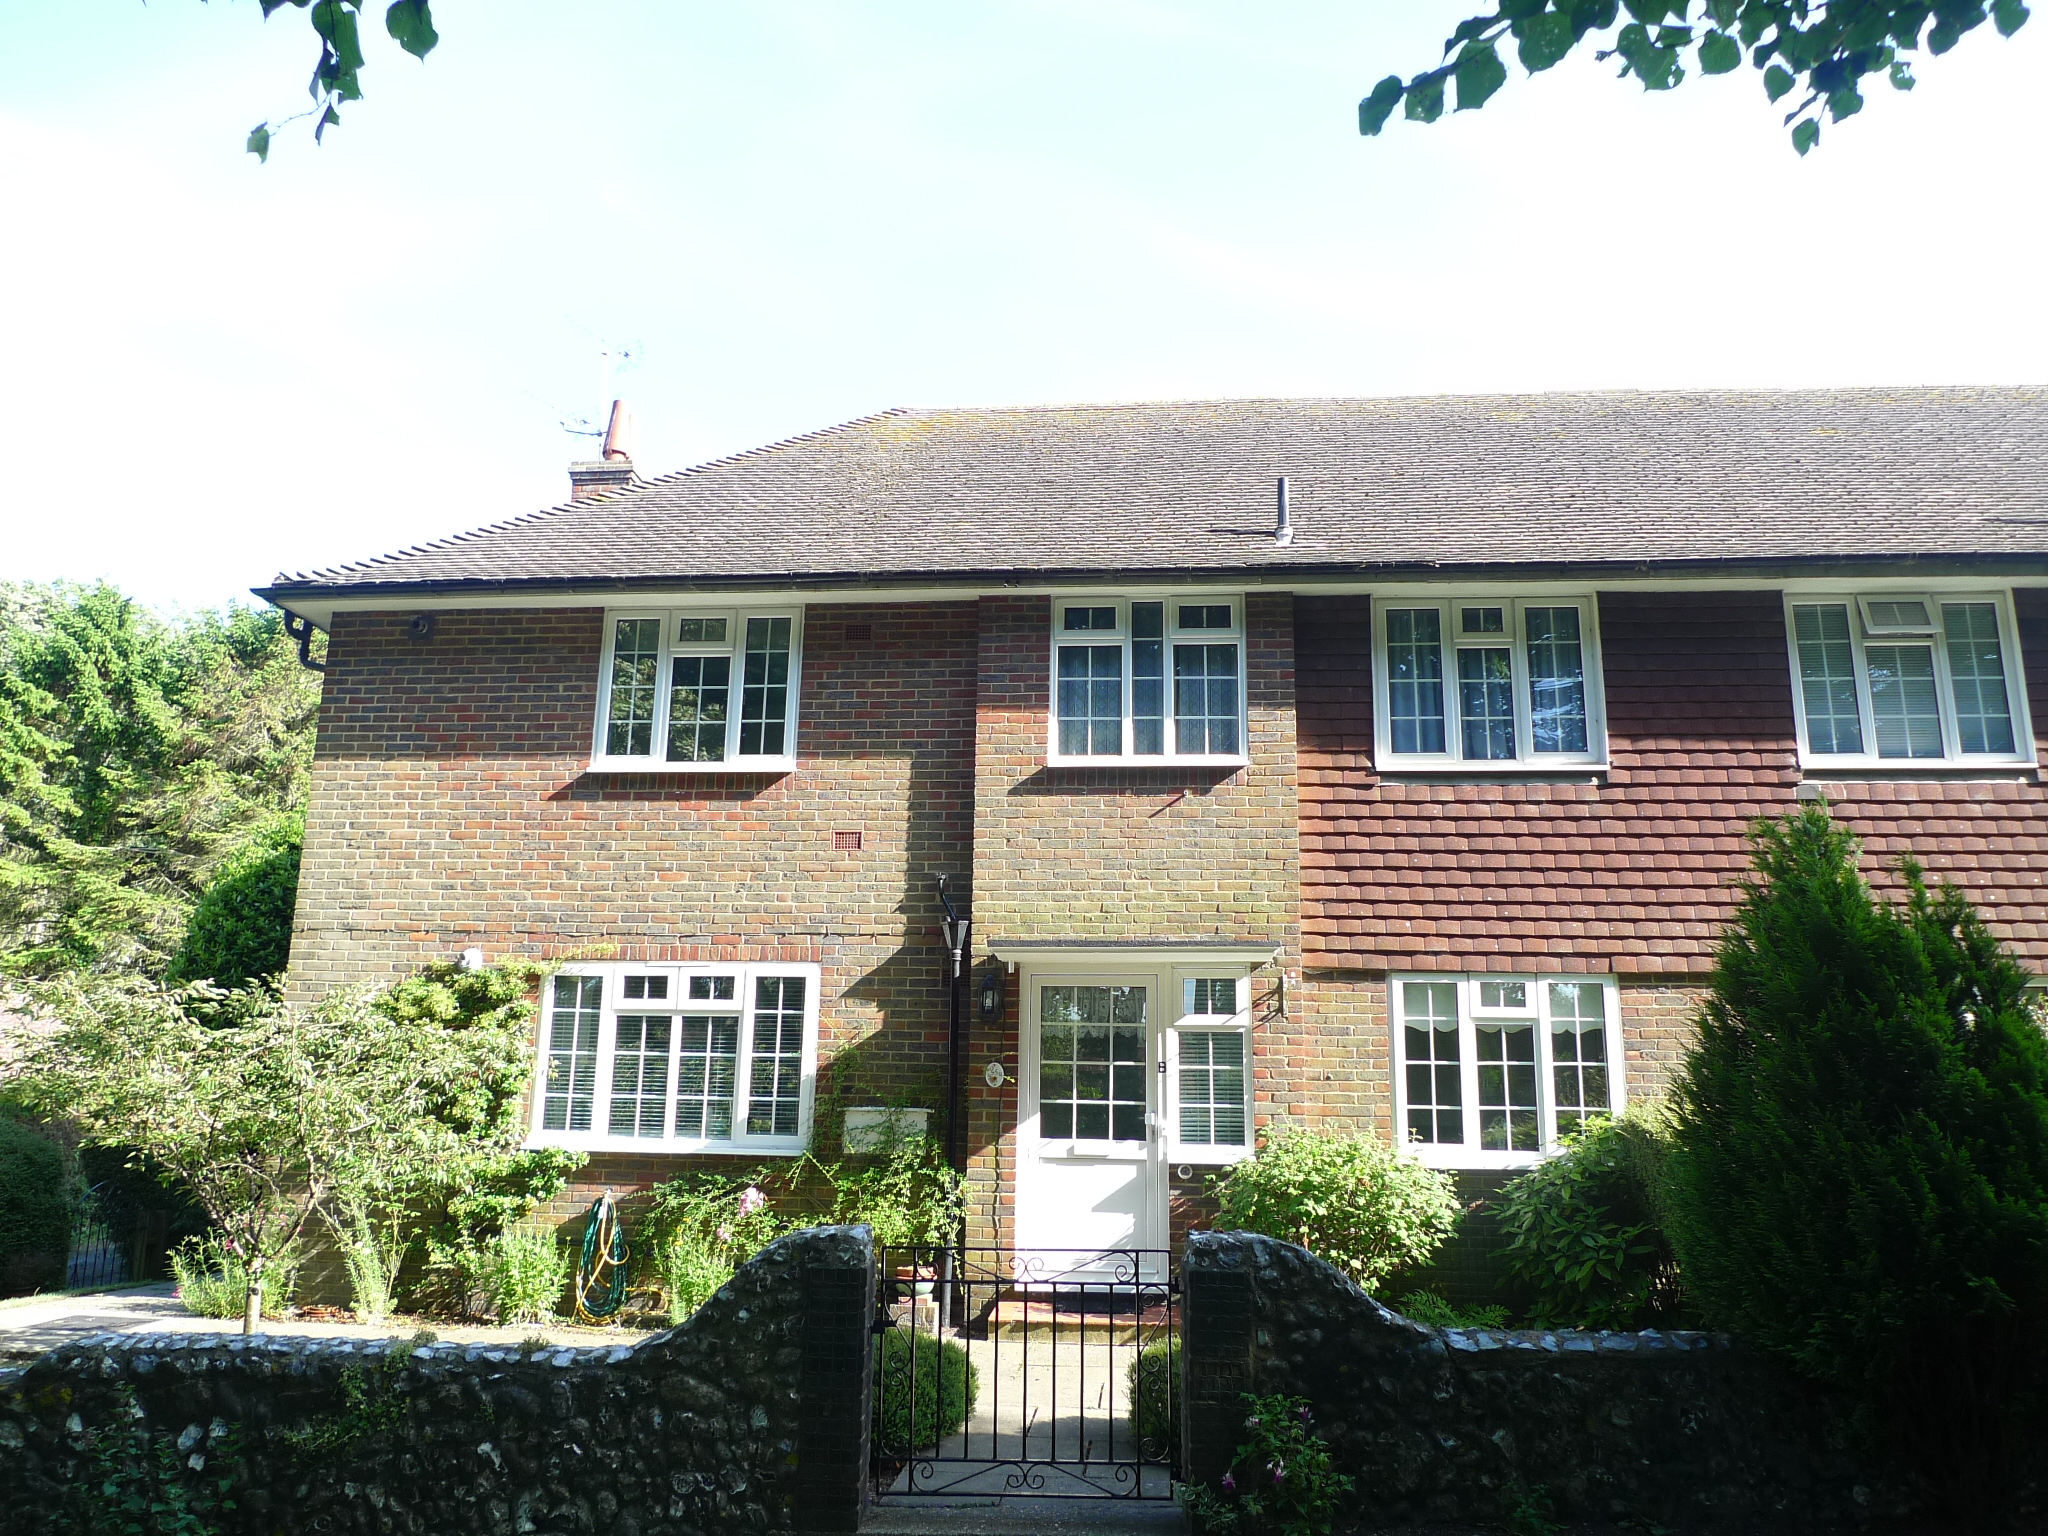 Ratton Drive, Eastbourne